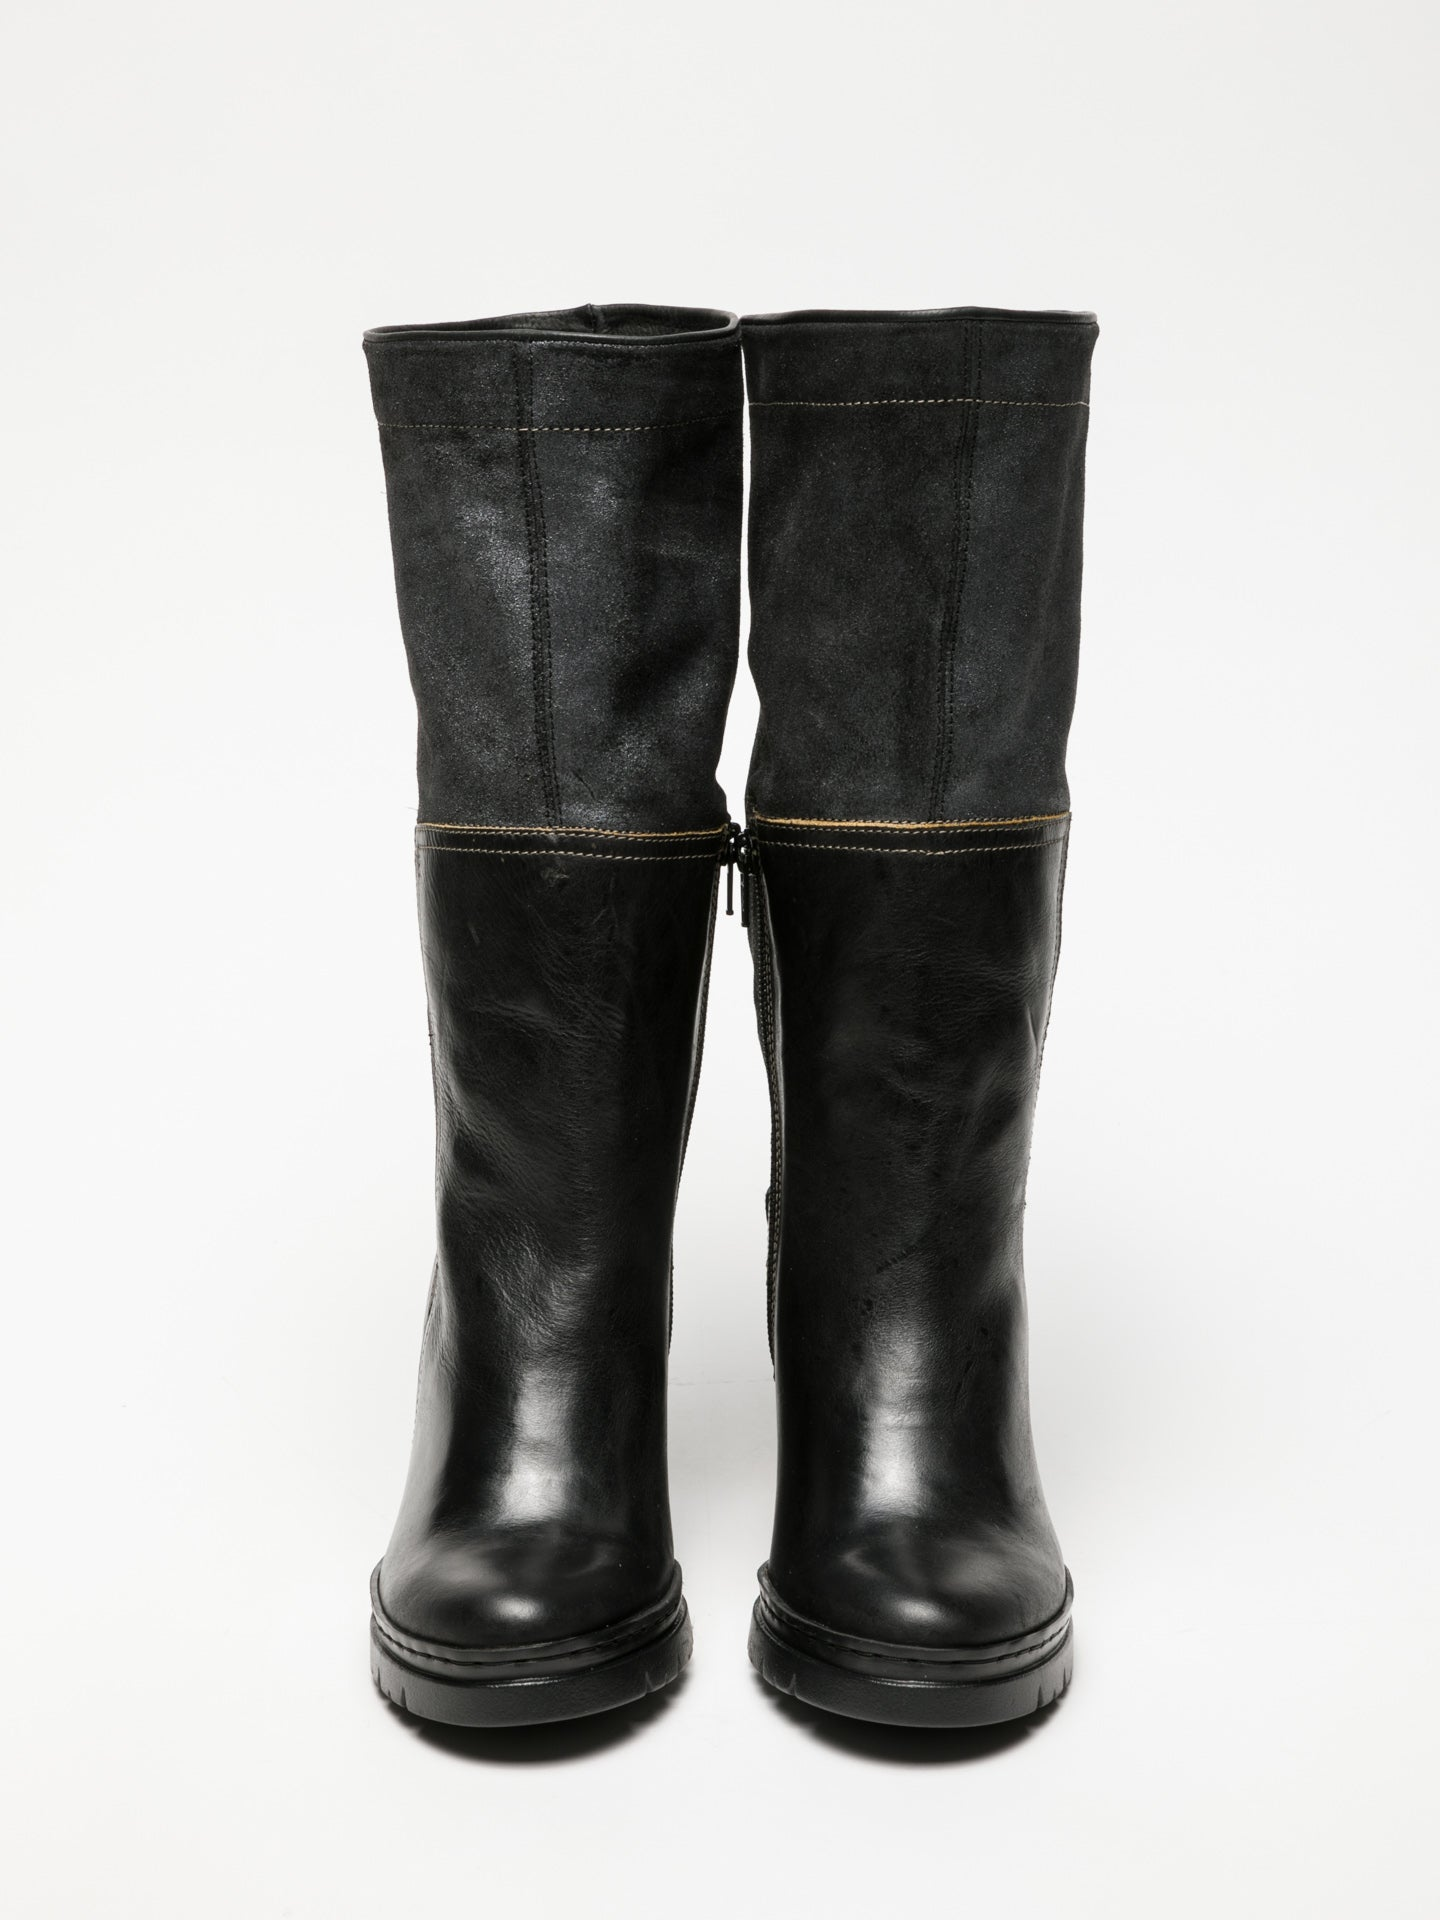 Fly London Black Knee-High Boots